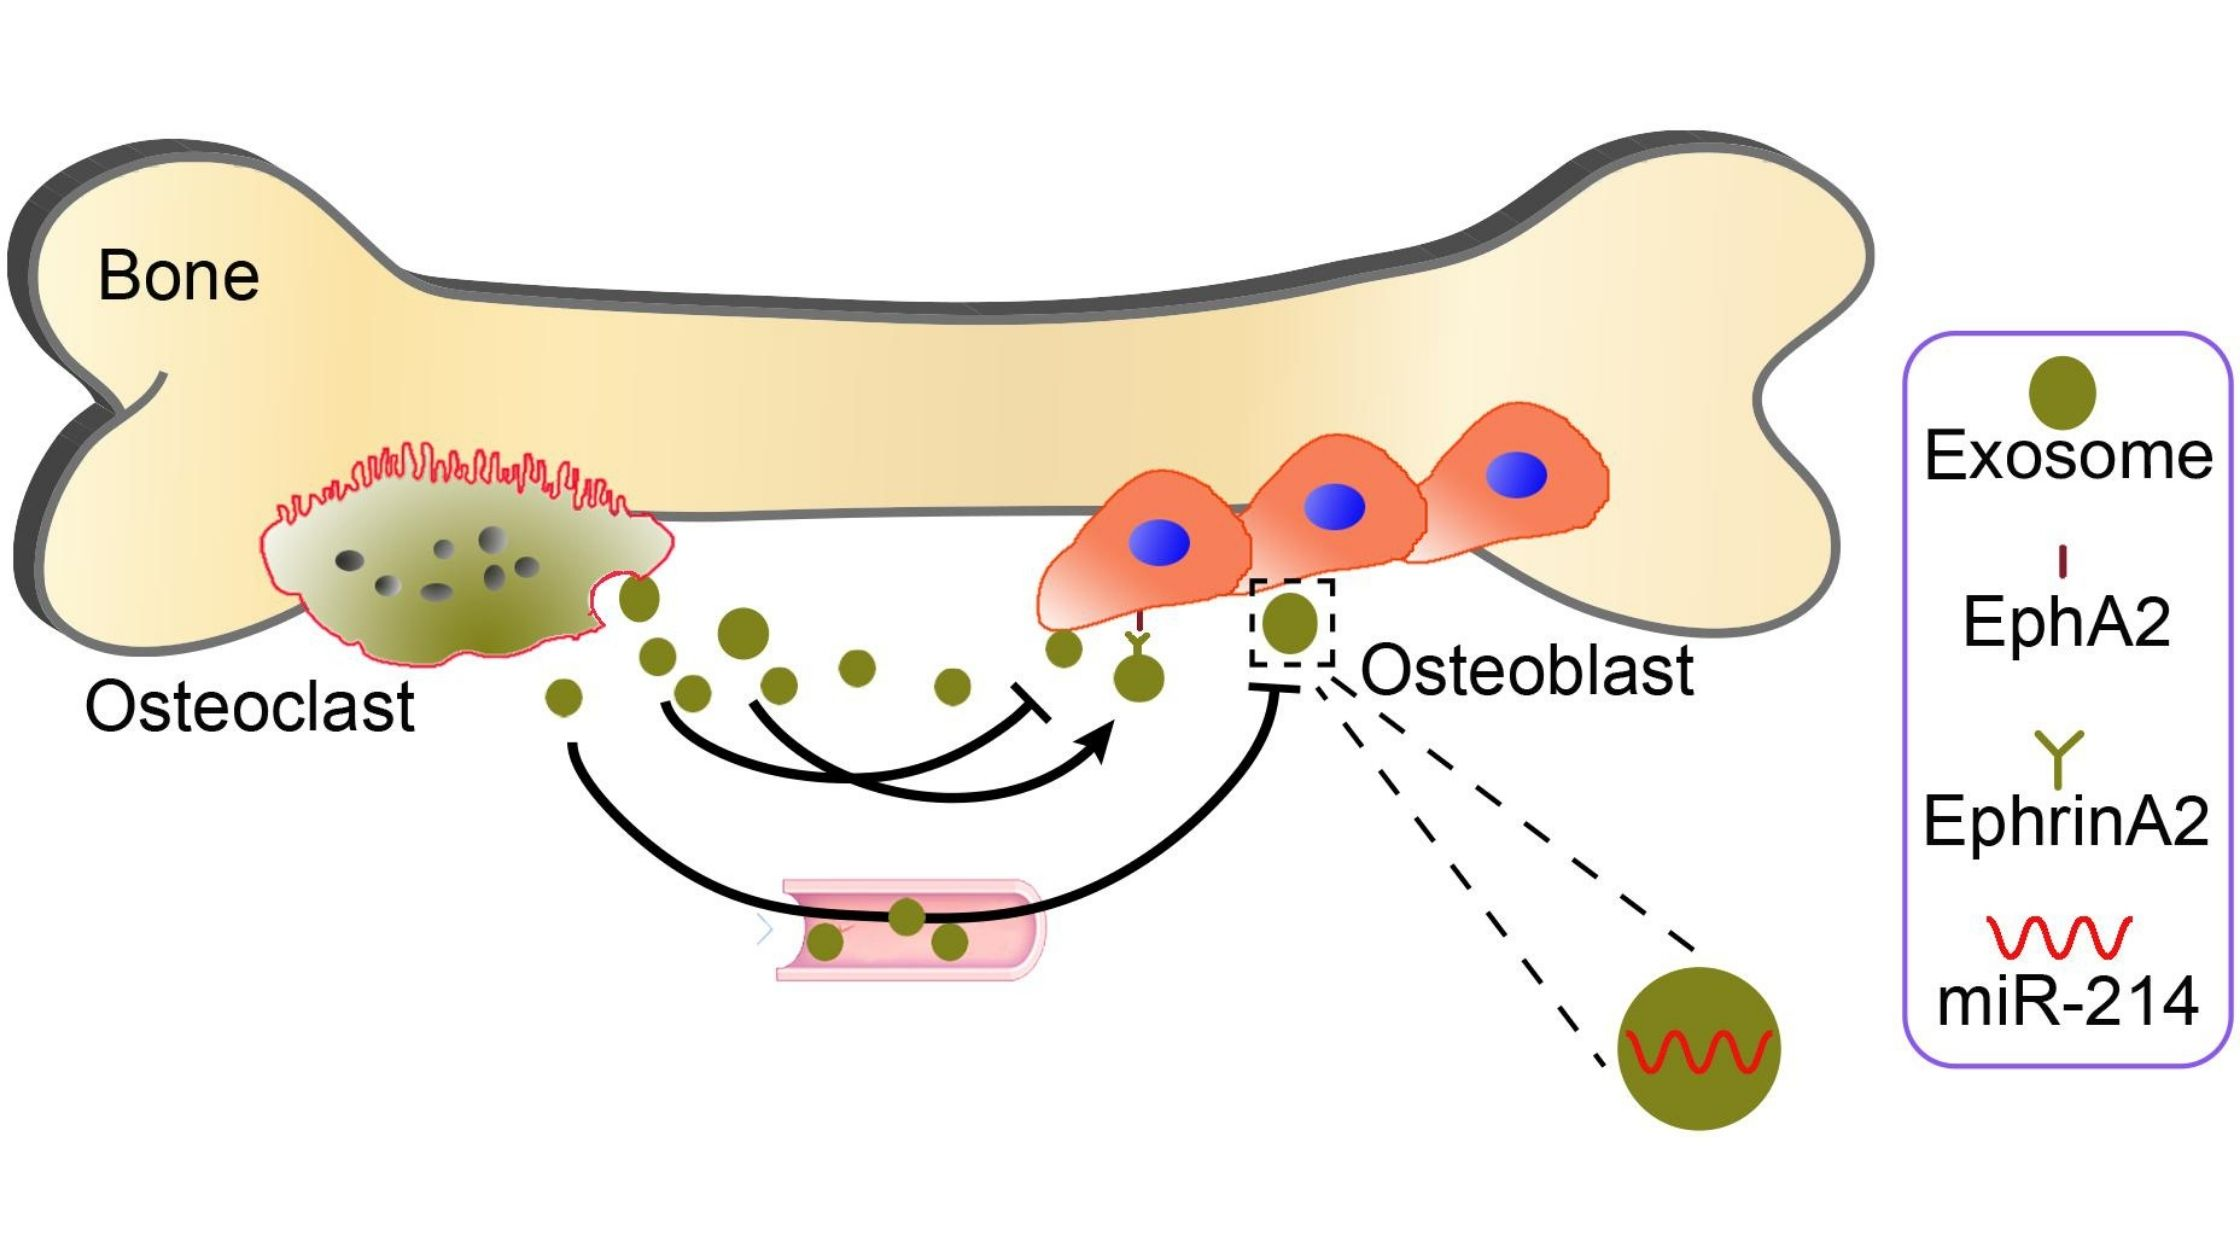 The science behind the process of bone resorption